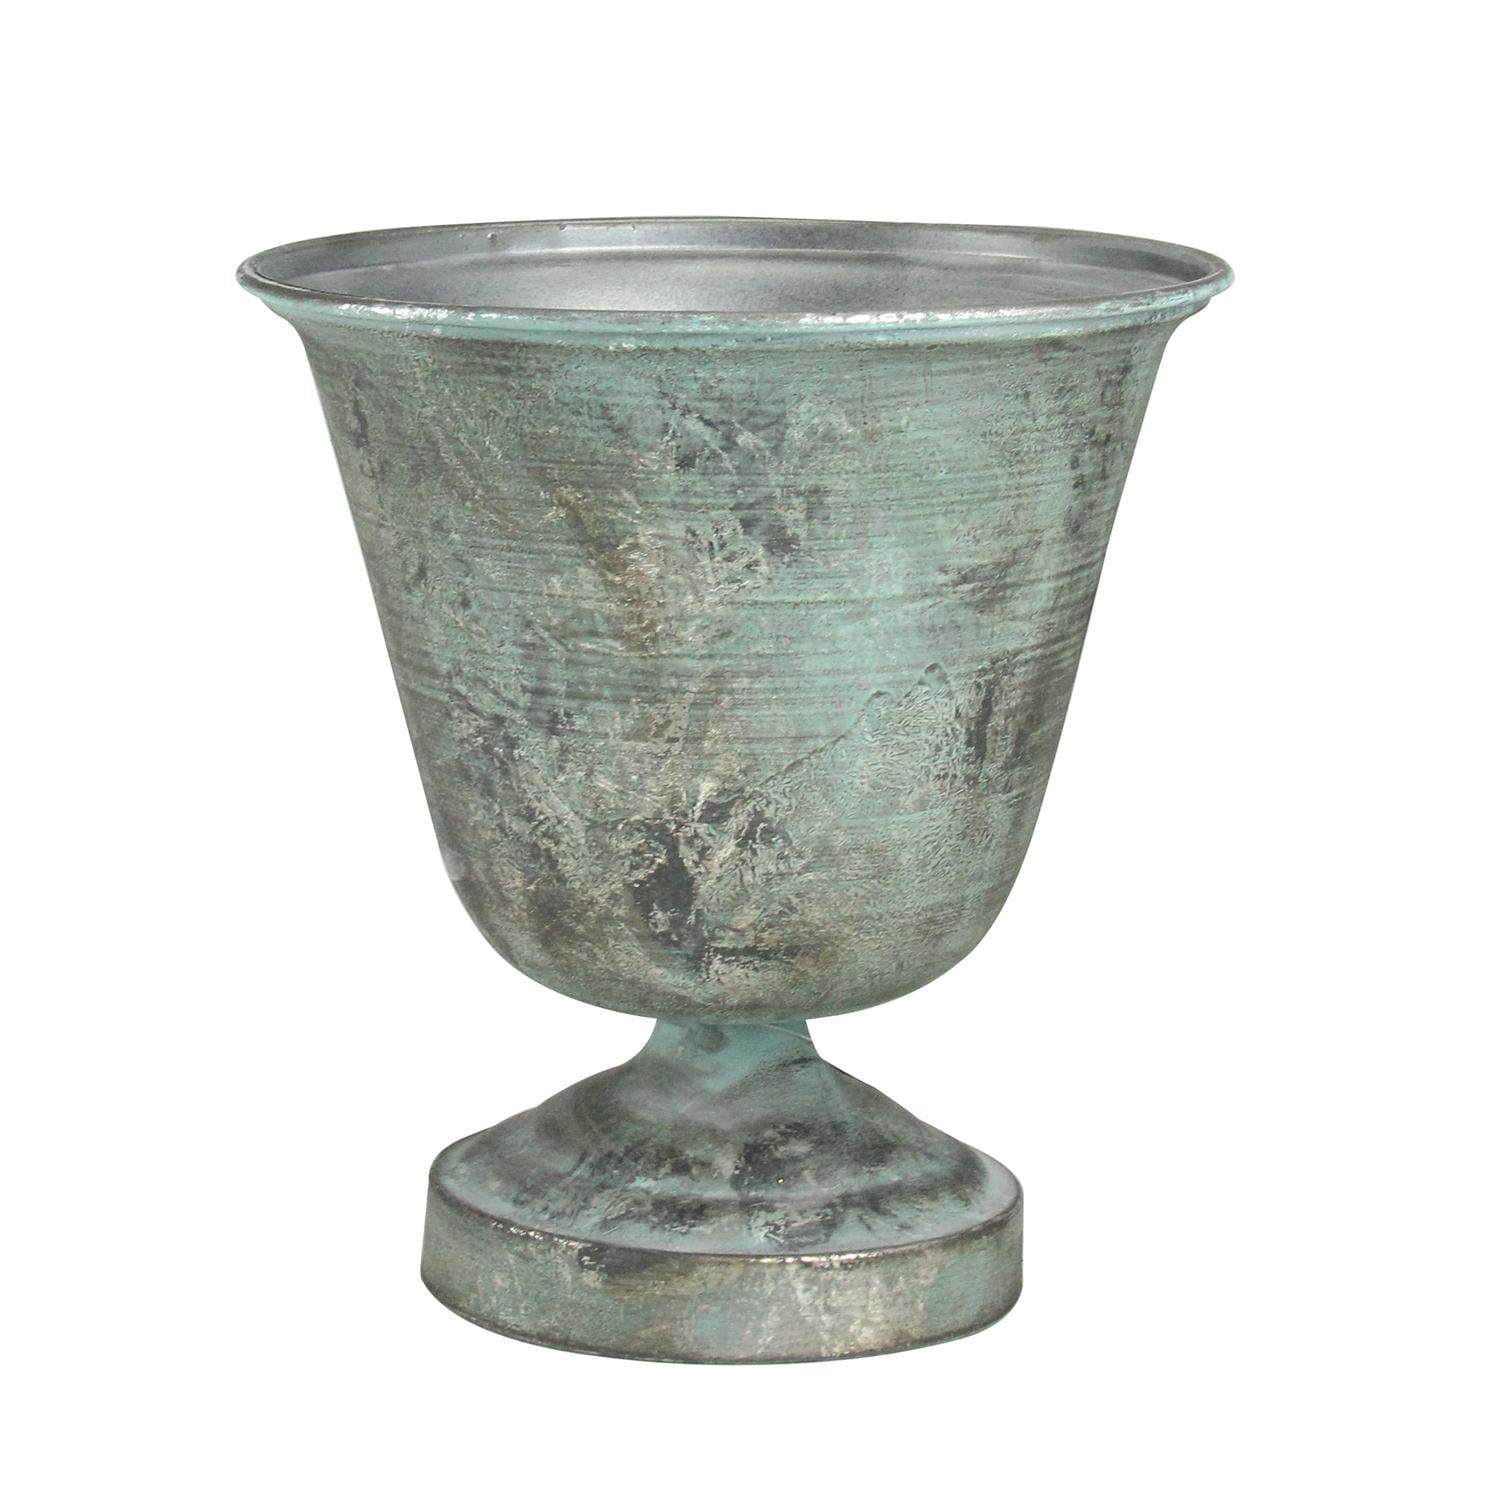 10.25� Simply Elegant Distressed Silver and Verdigris Decorative Metal Urn Planter by Allstate